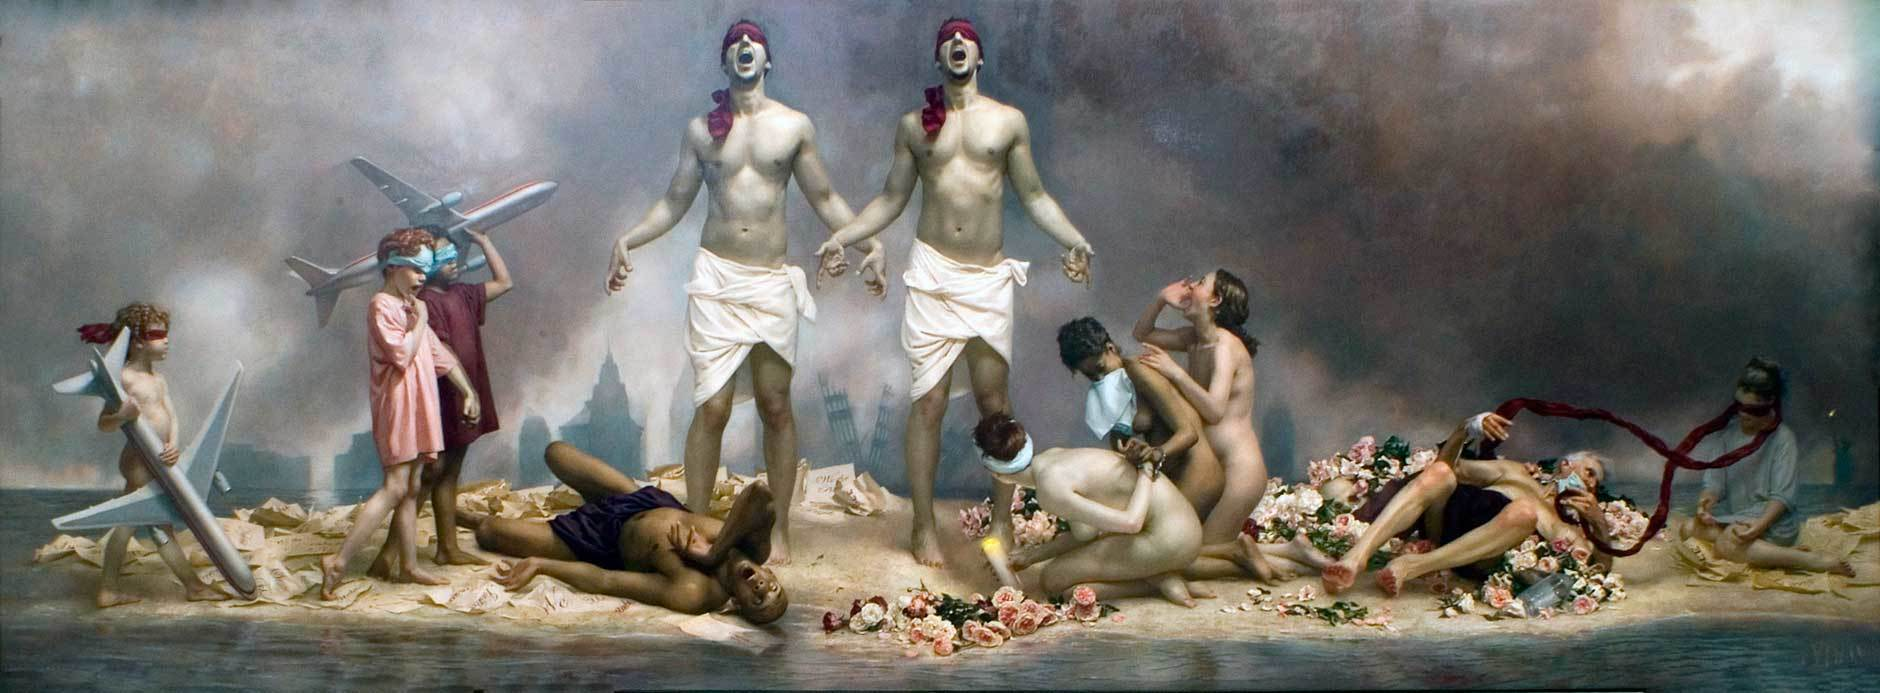 """The Cycle of Terror and Tragedy,"" Graydon Parrish, Oil on Canvas, 76 x 210 in., Charles F. Smith Fund and in memory of Scott O'Brien who died in the World Trade Center, given by his family"